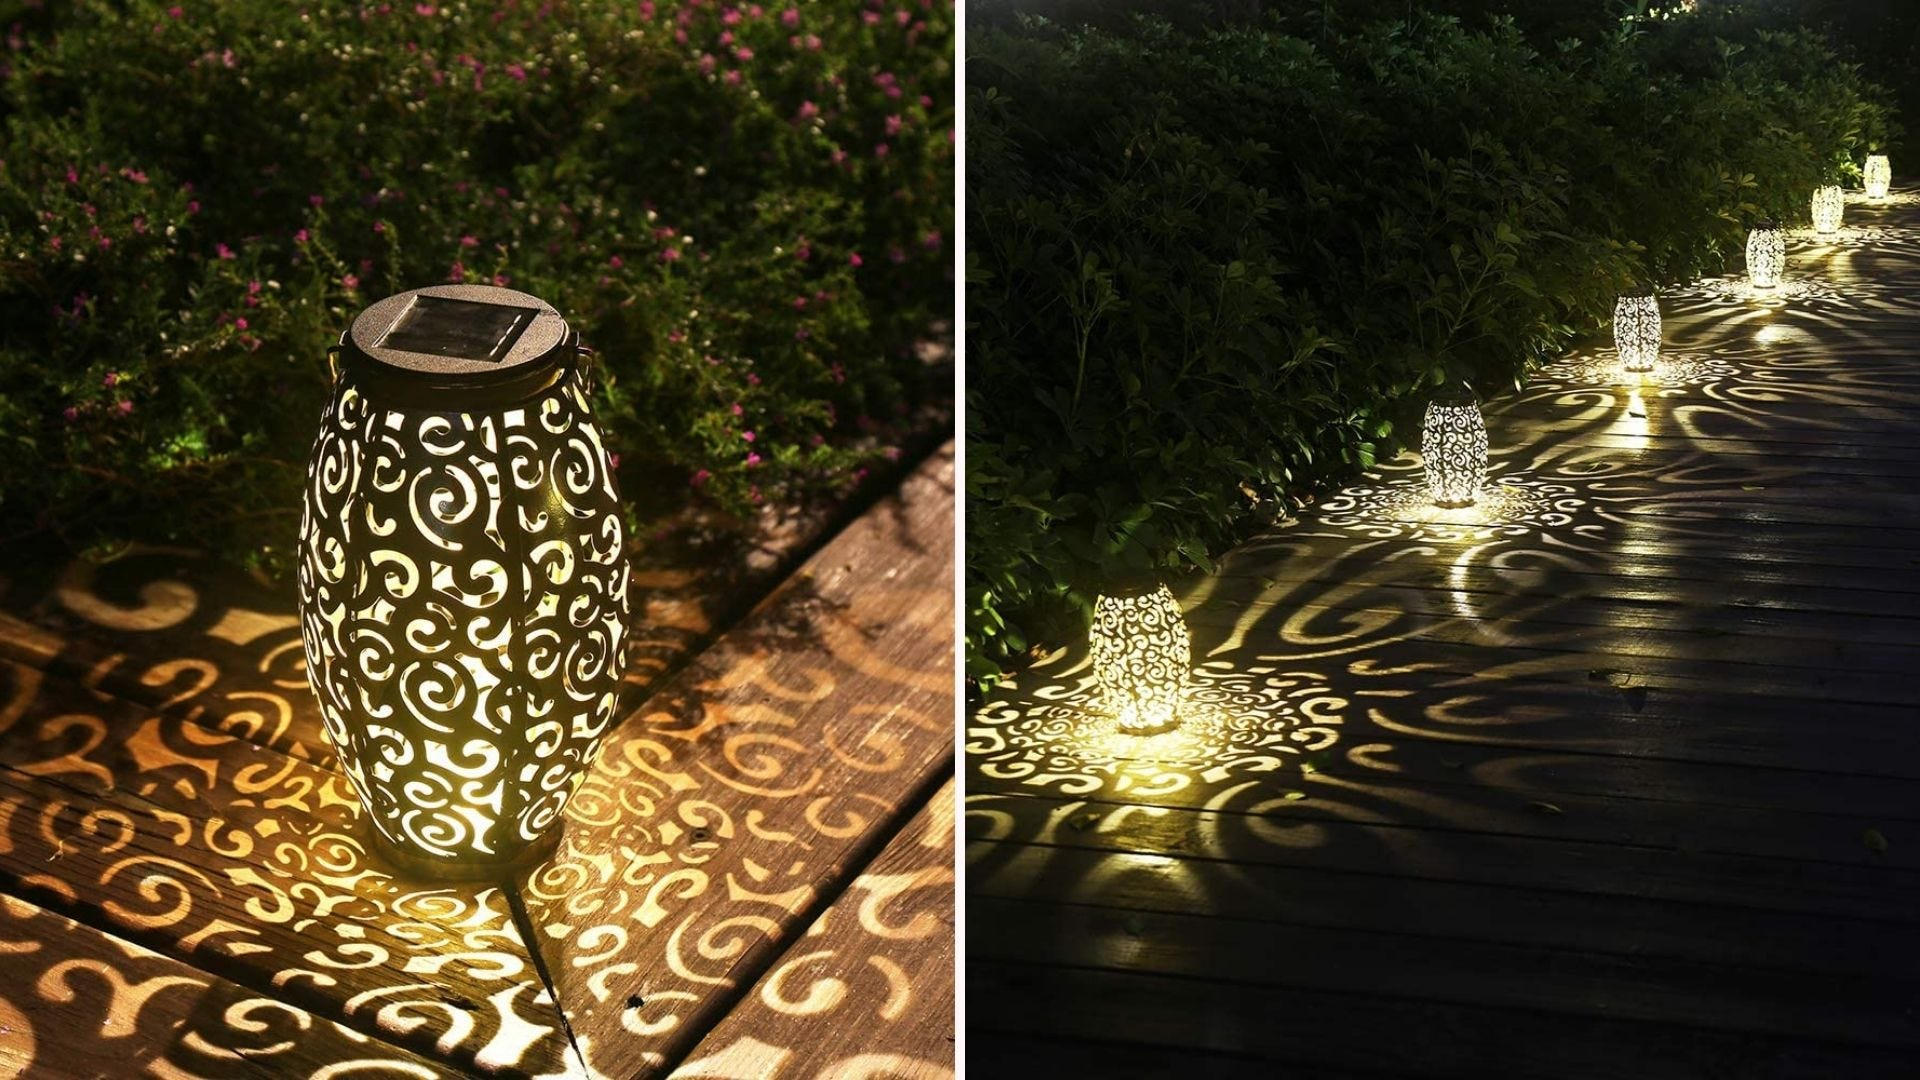 Two side-by-side images of the Esgarden solar lantern illuminating different areas of someone's yard.